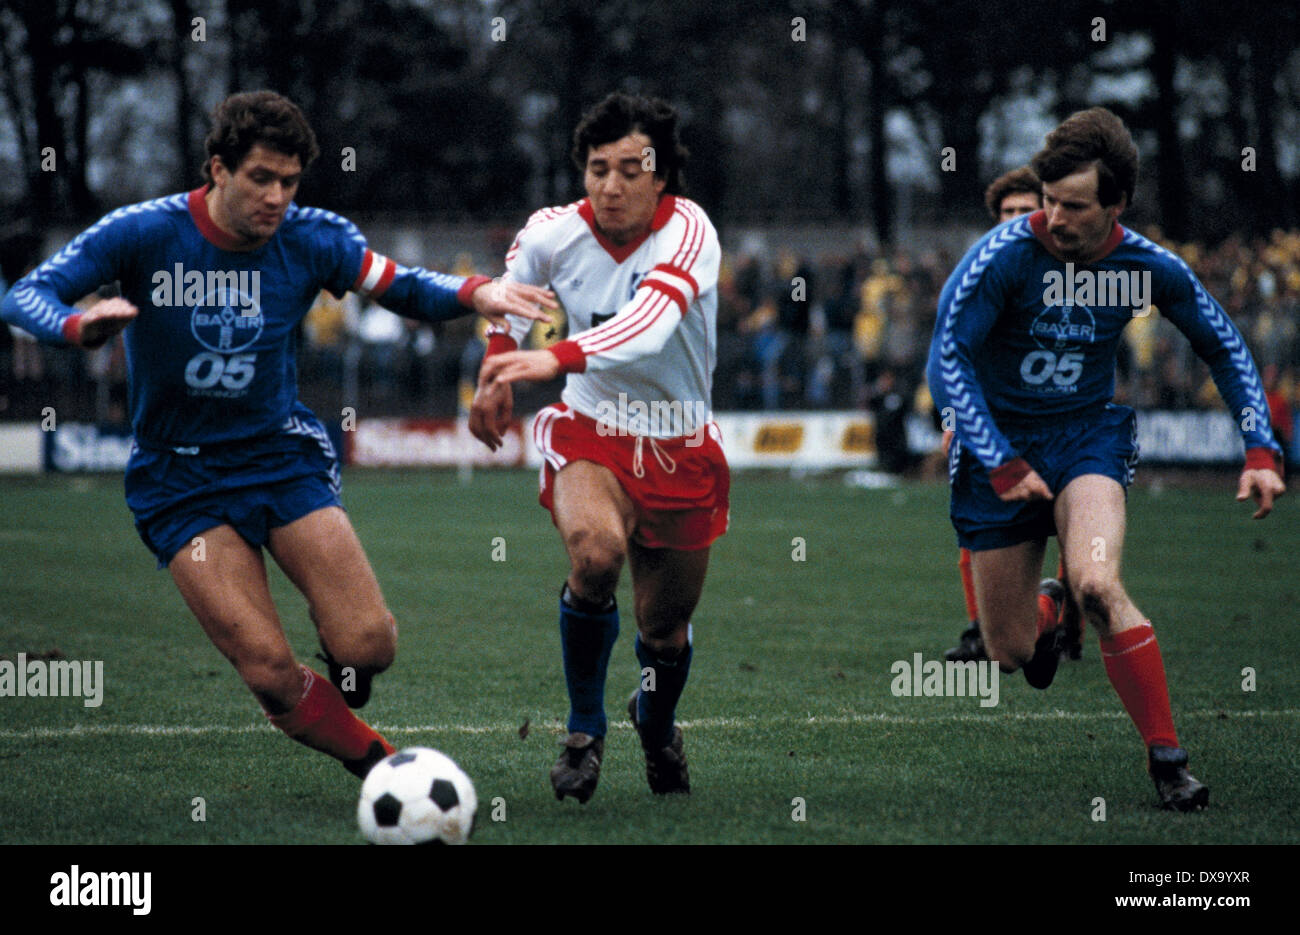 football, Bundesliga, 1980/1981, Grotenburg Stadium, FC Bayer 05 Uerdingen versus Hamburger SV 0:3, scene of the match, f.l.t.r. team leader Paul Hahn (Bayer), team leader Felix Magath (HSV), Herbert Zimmer (Bayer) - Stock Image